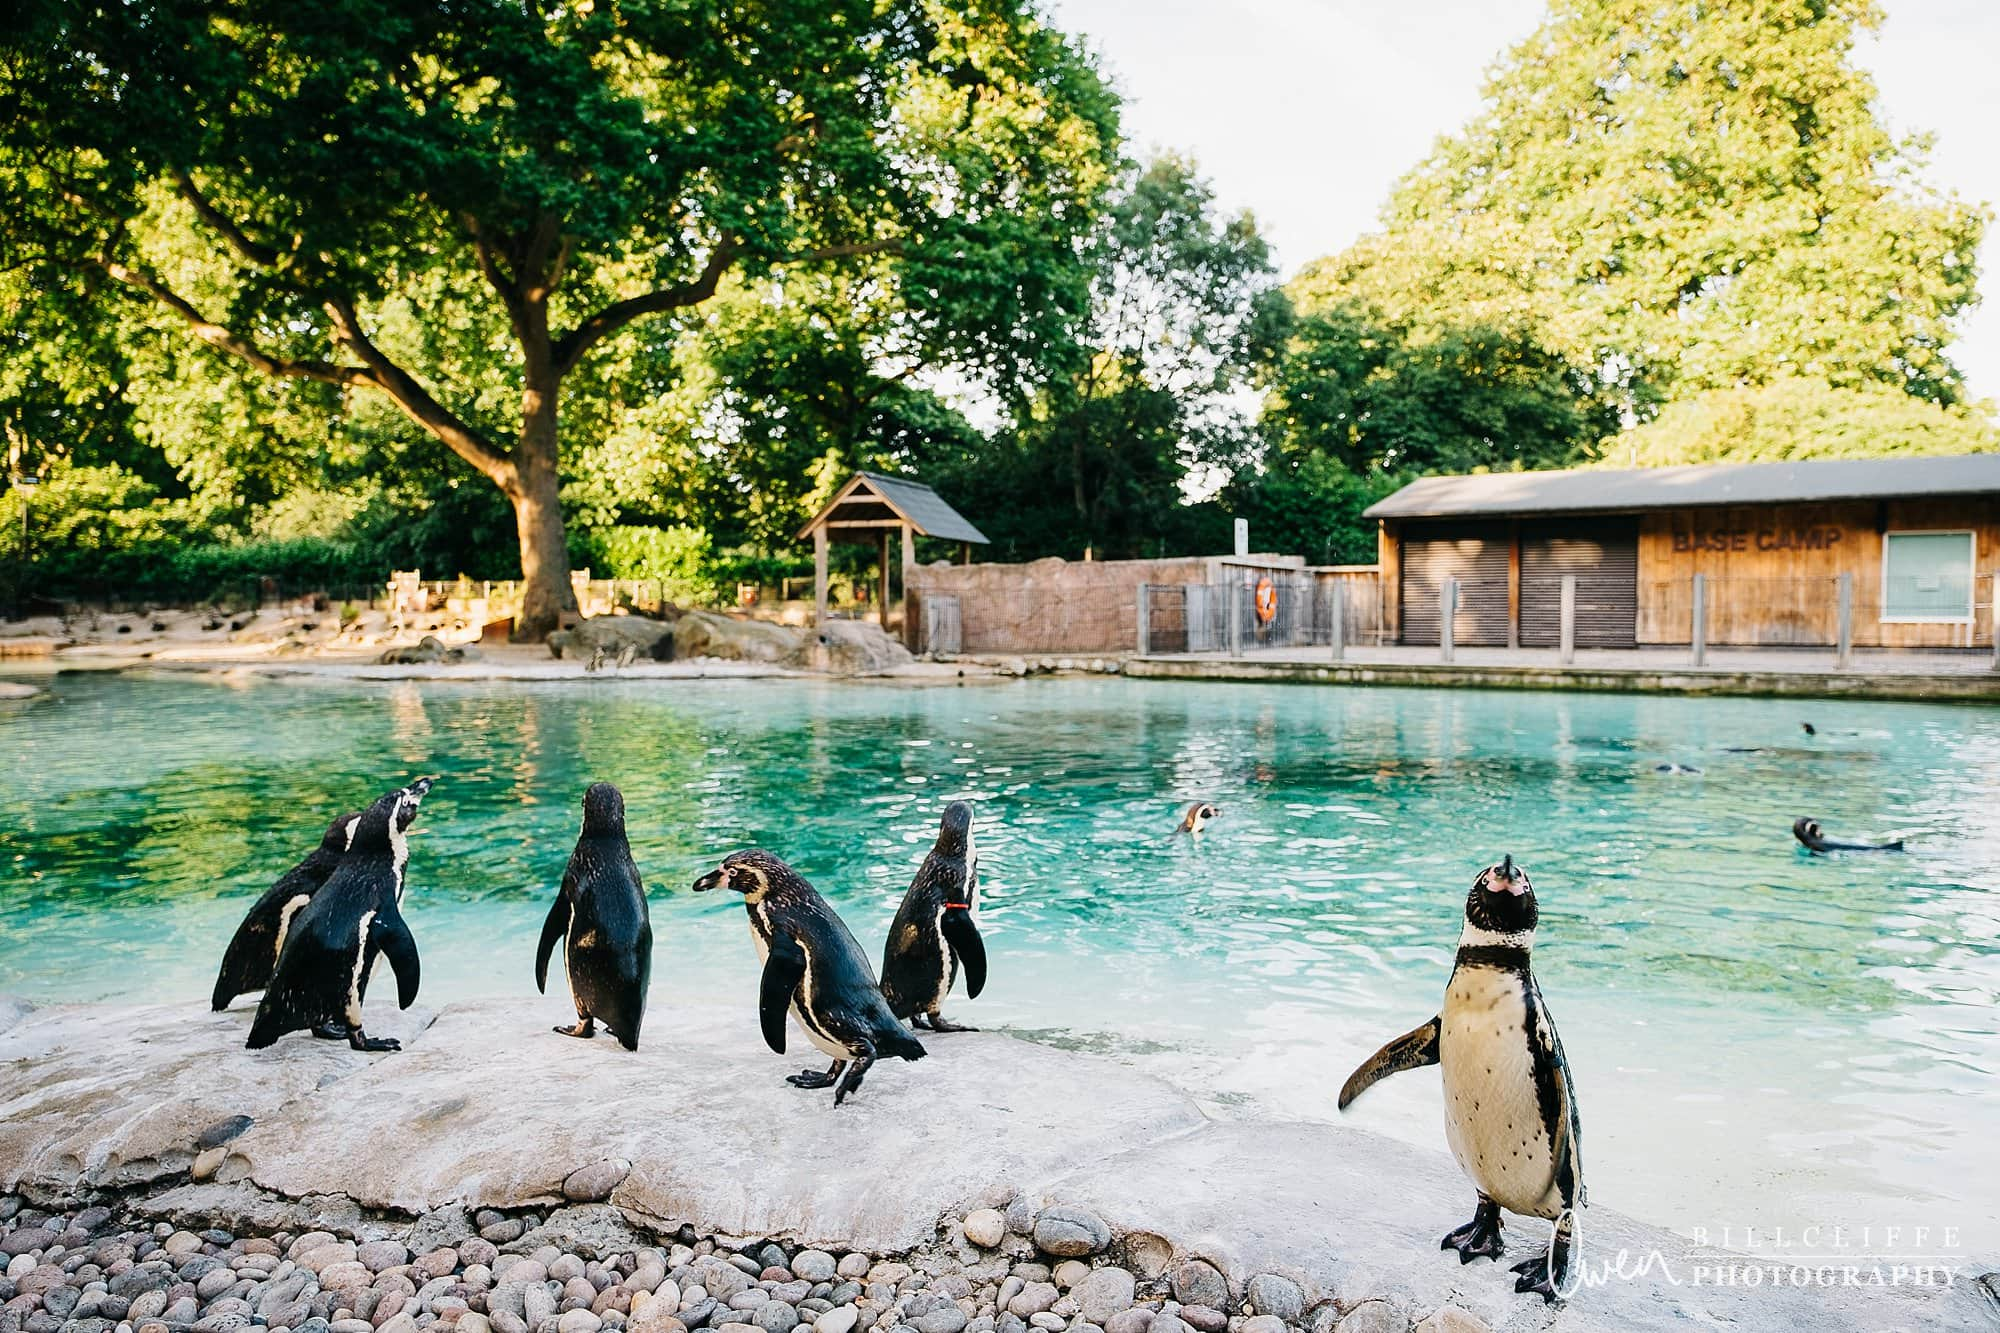 london event photographer zsl london zoo 1706 014 - A Party with the Penguins at London Zoo